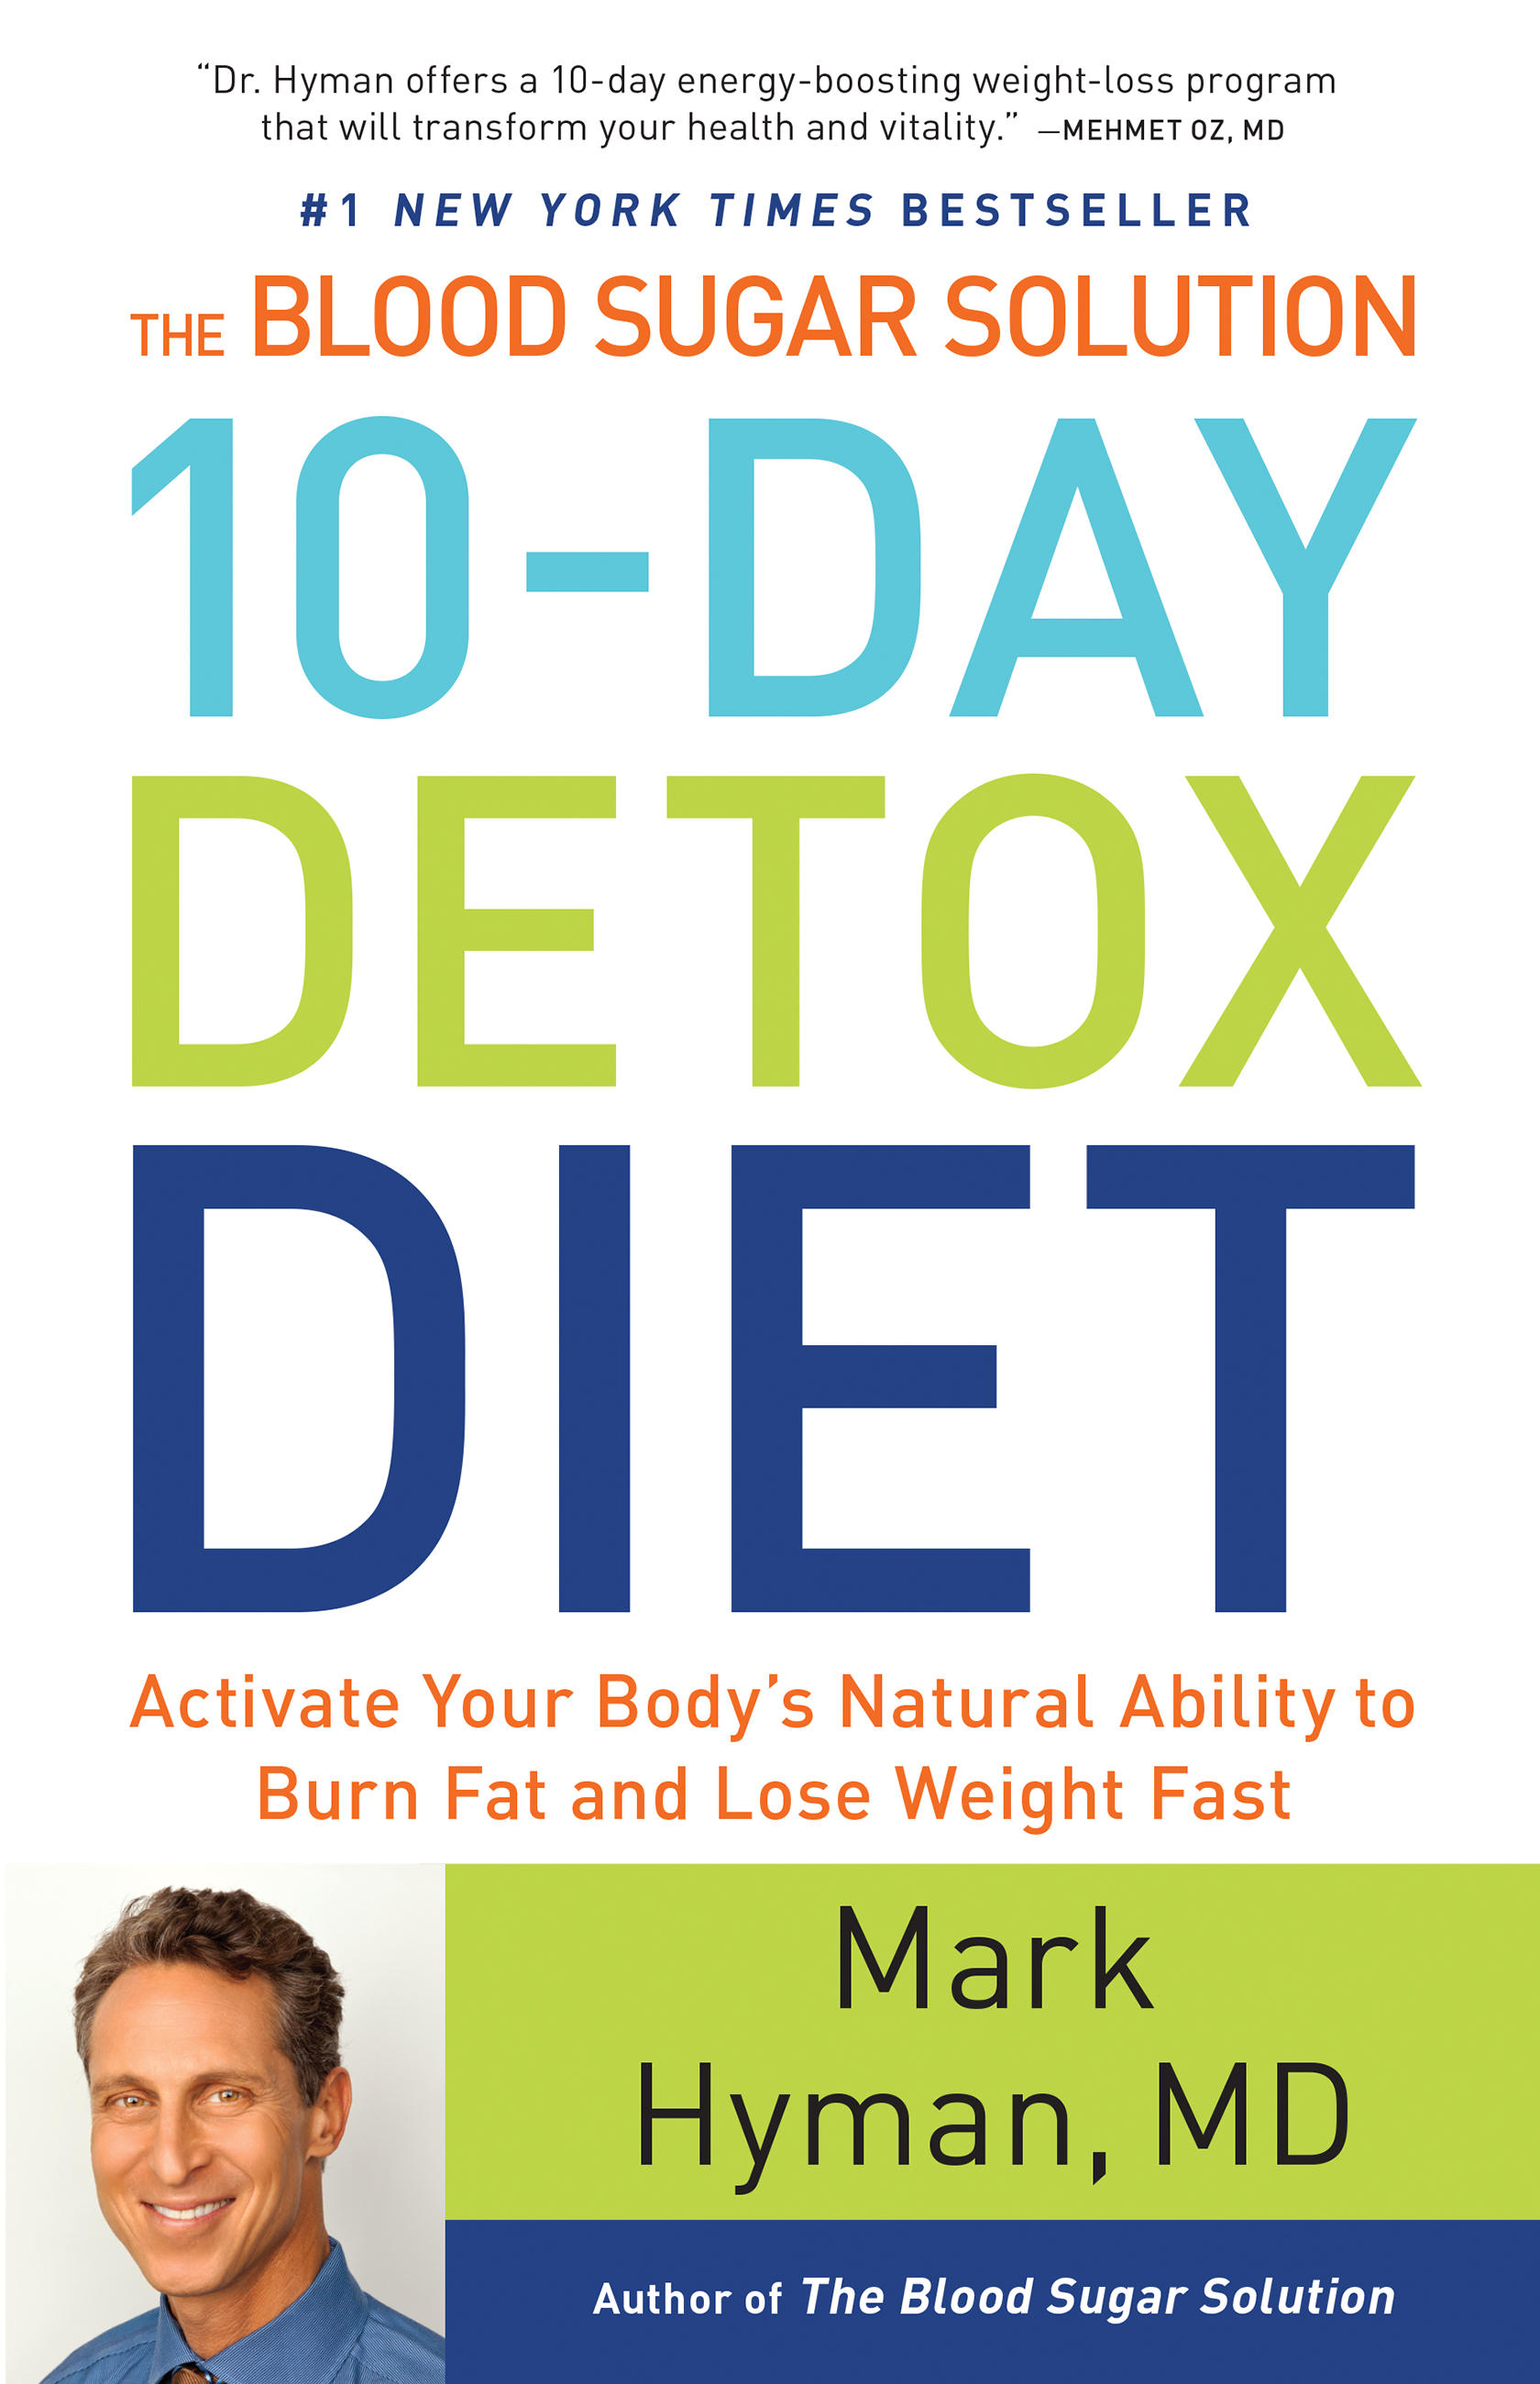 The Blood Sugar Solution 10-Day Detox Diet Activate Your Body's Natural Ability to Burn Fat and Lose Weight Fast